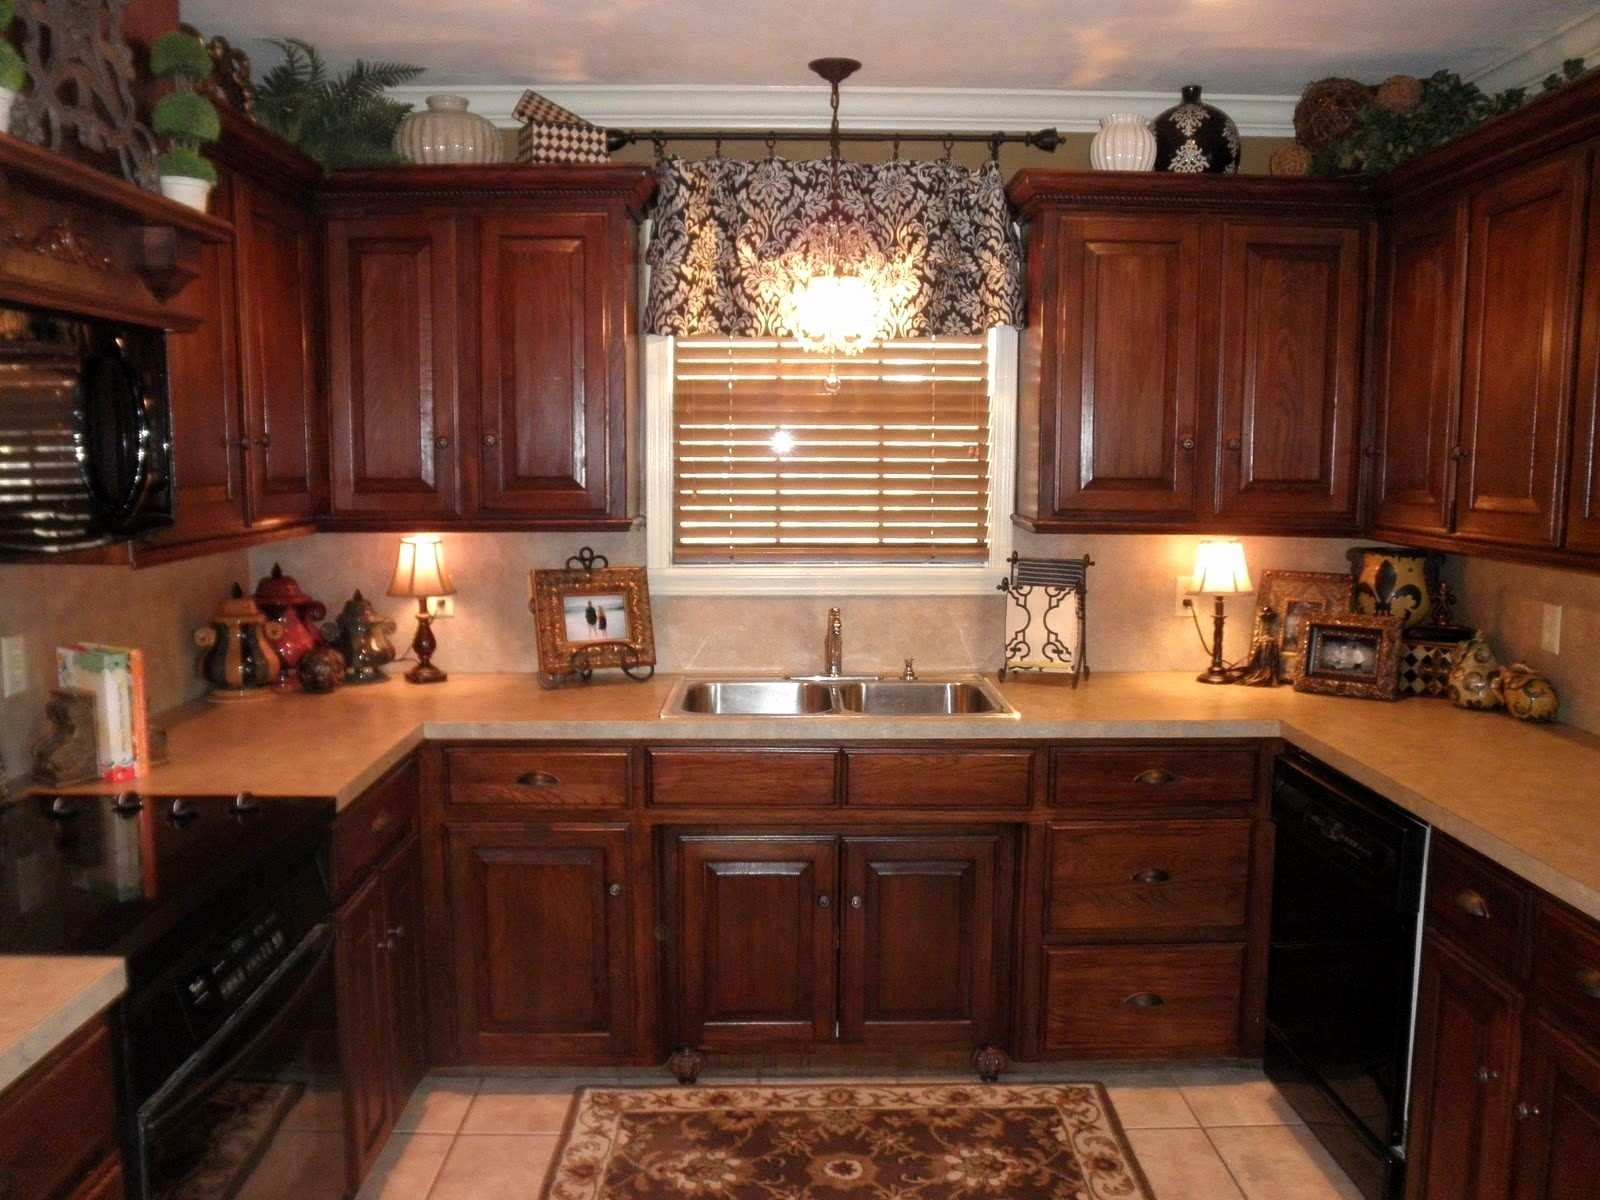 Creative Image Of Lighting Over Kitchen Sink When It Has To Do With The Kitchen Let There Be Light Cheap Kitchen Remodel Kitchen Remodel Cost Kitchen Remodel